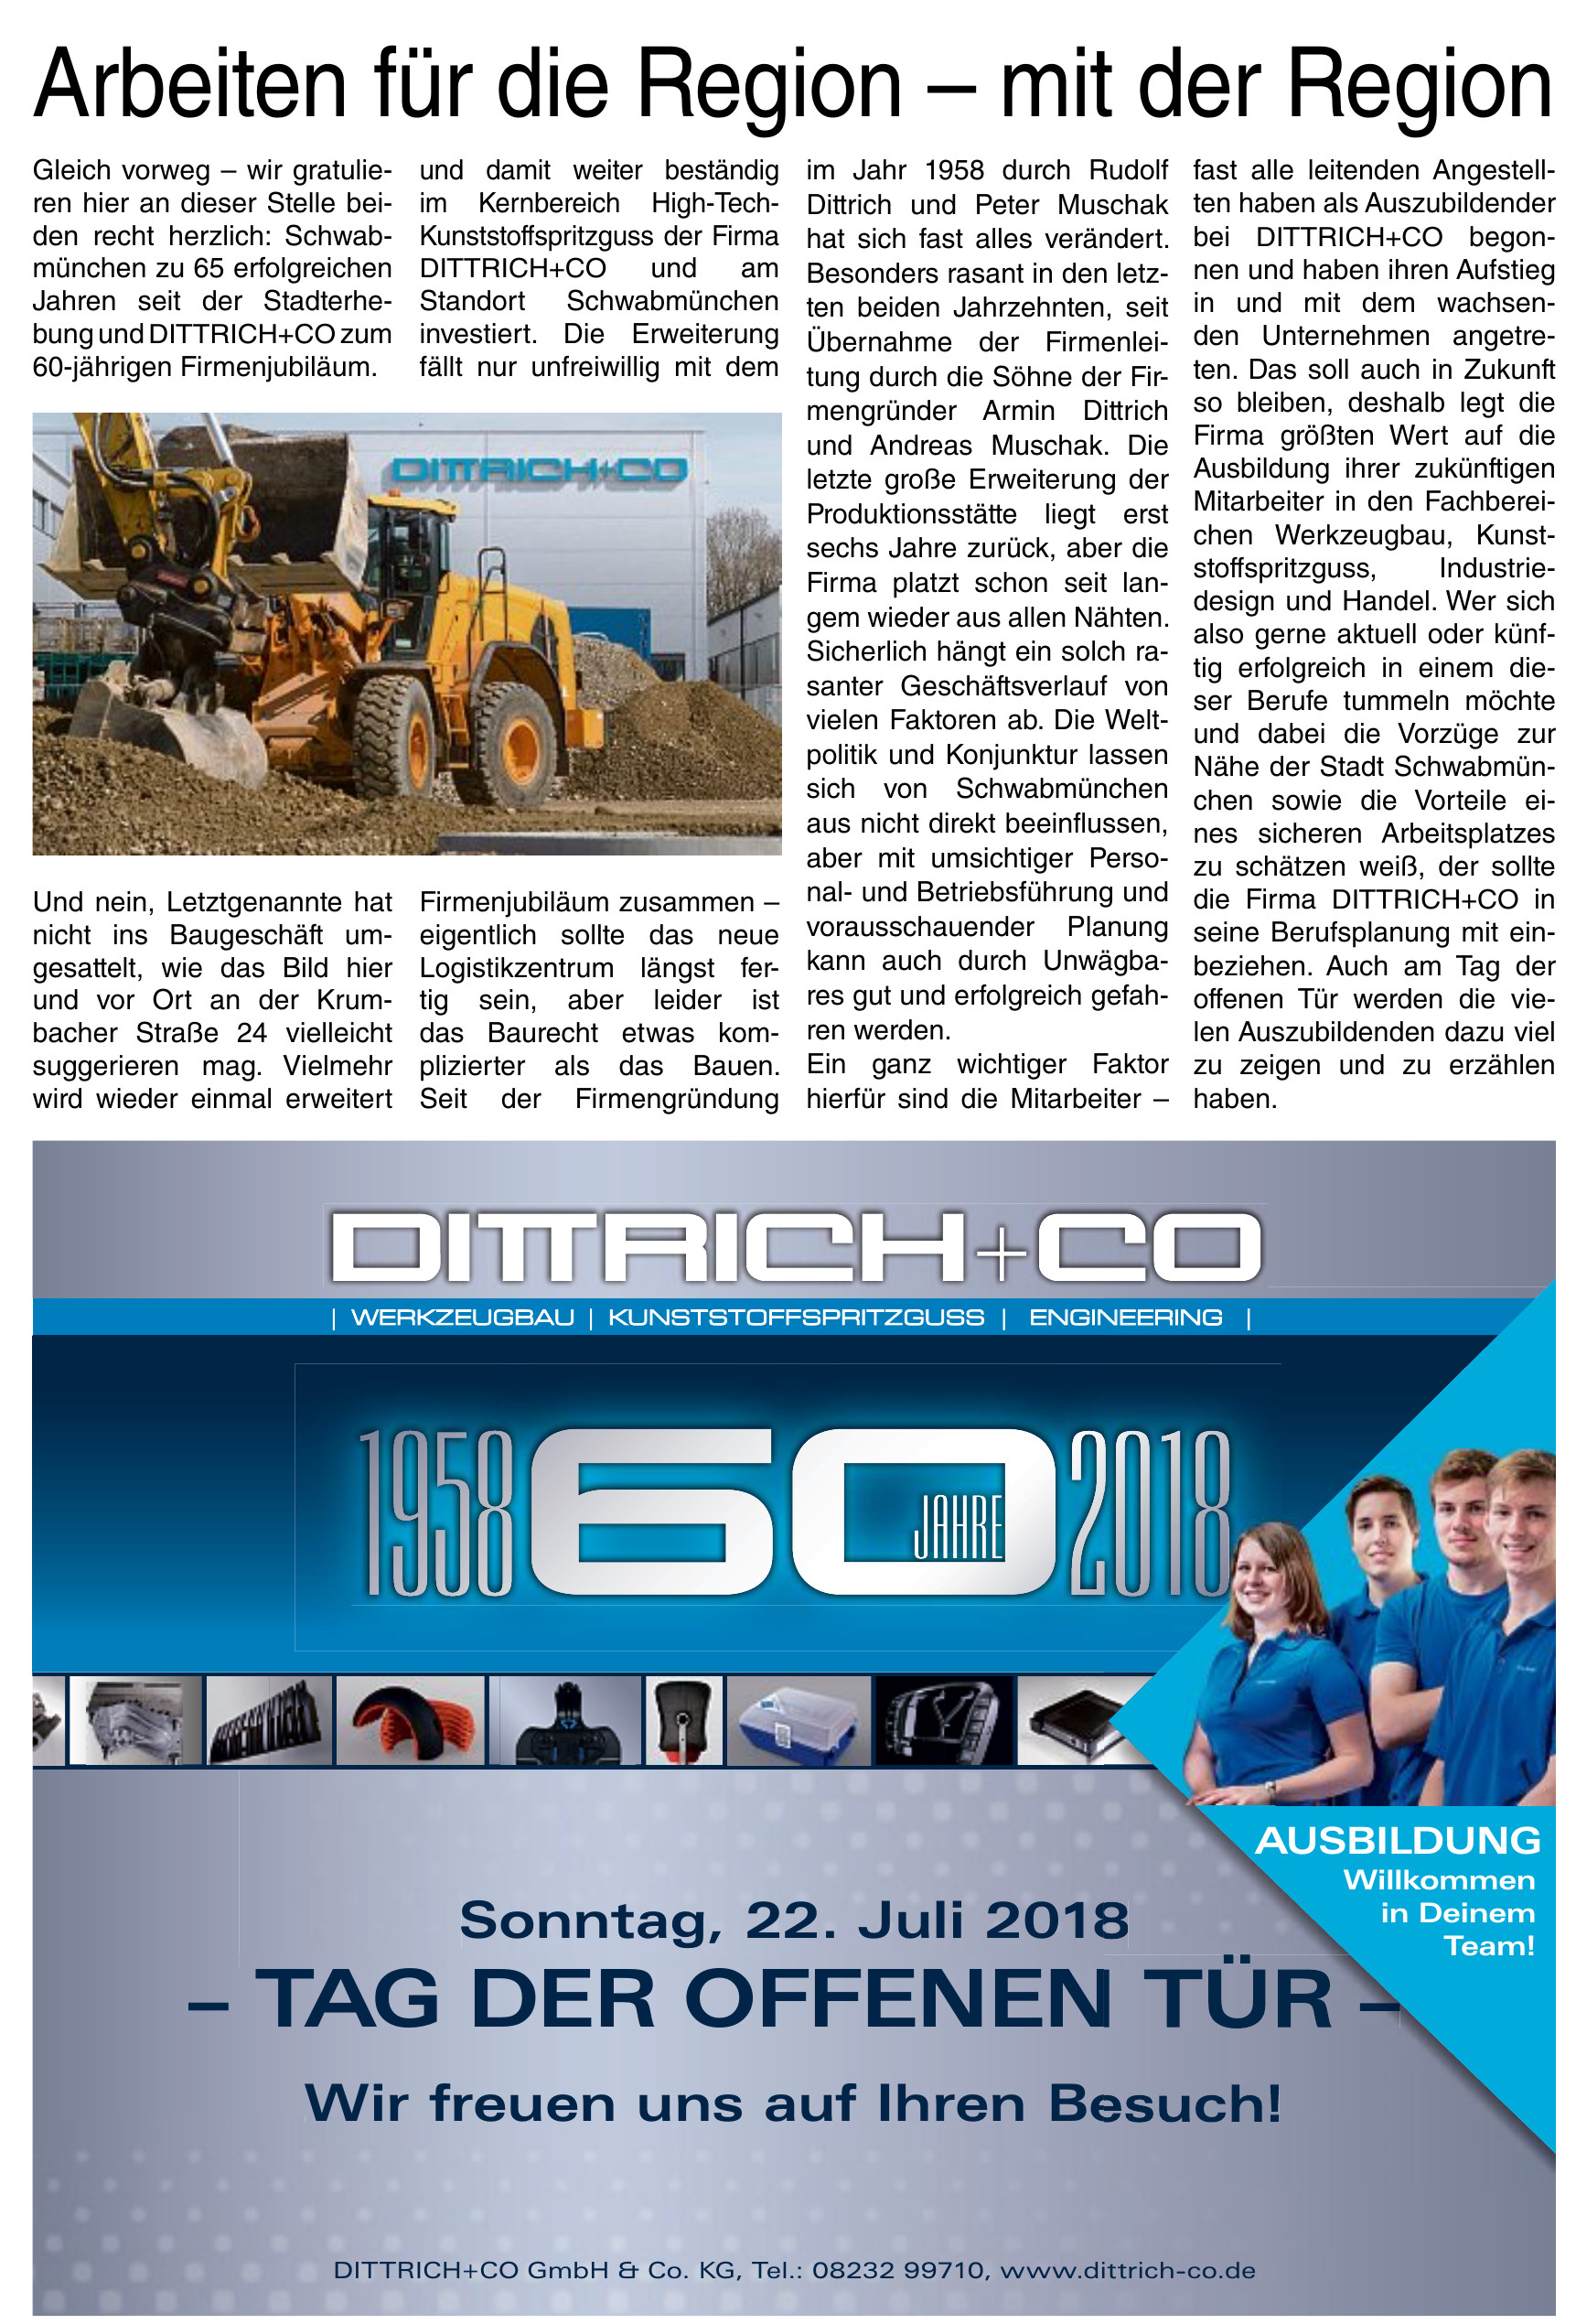 Dittrich+CO GmbH & Co. KG